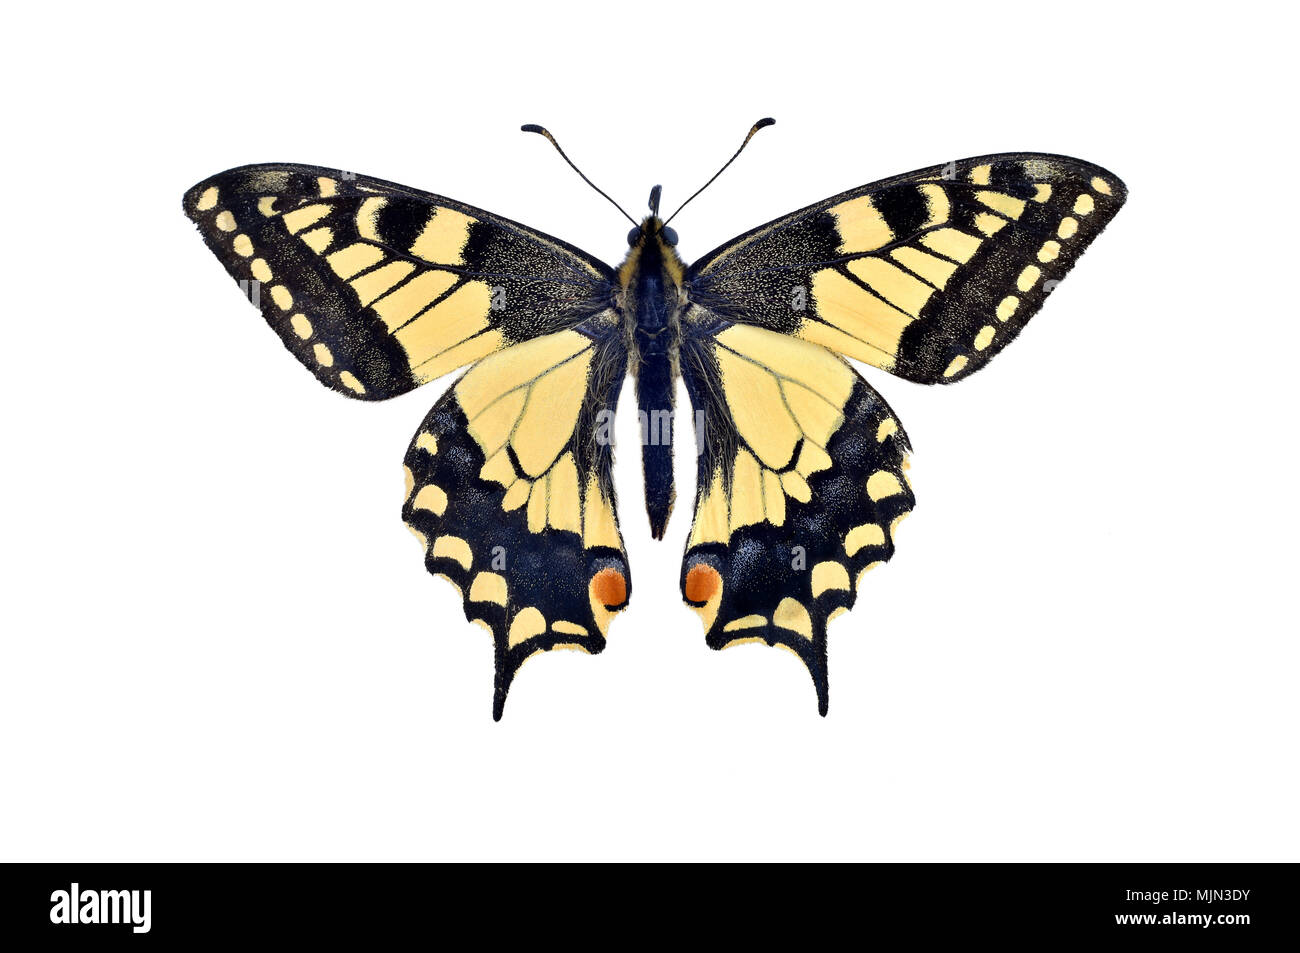 Old world swallowtail butterfly (Papilio Machaon), isolated on white background - Stock Image